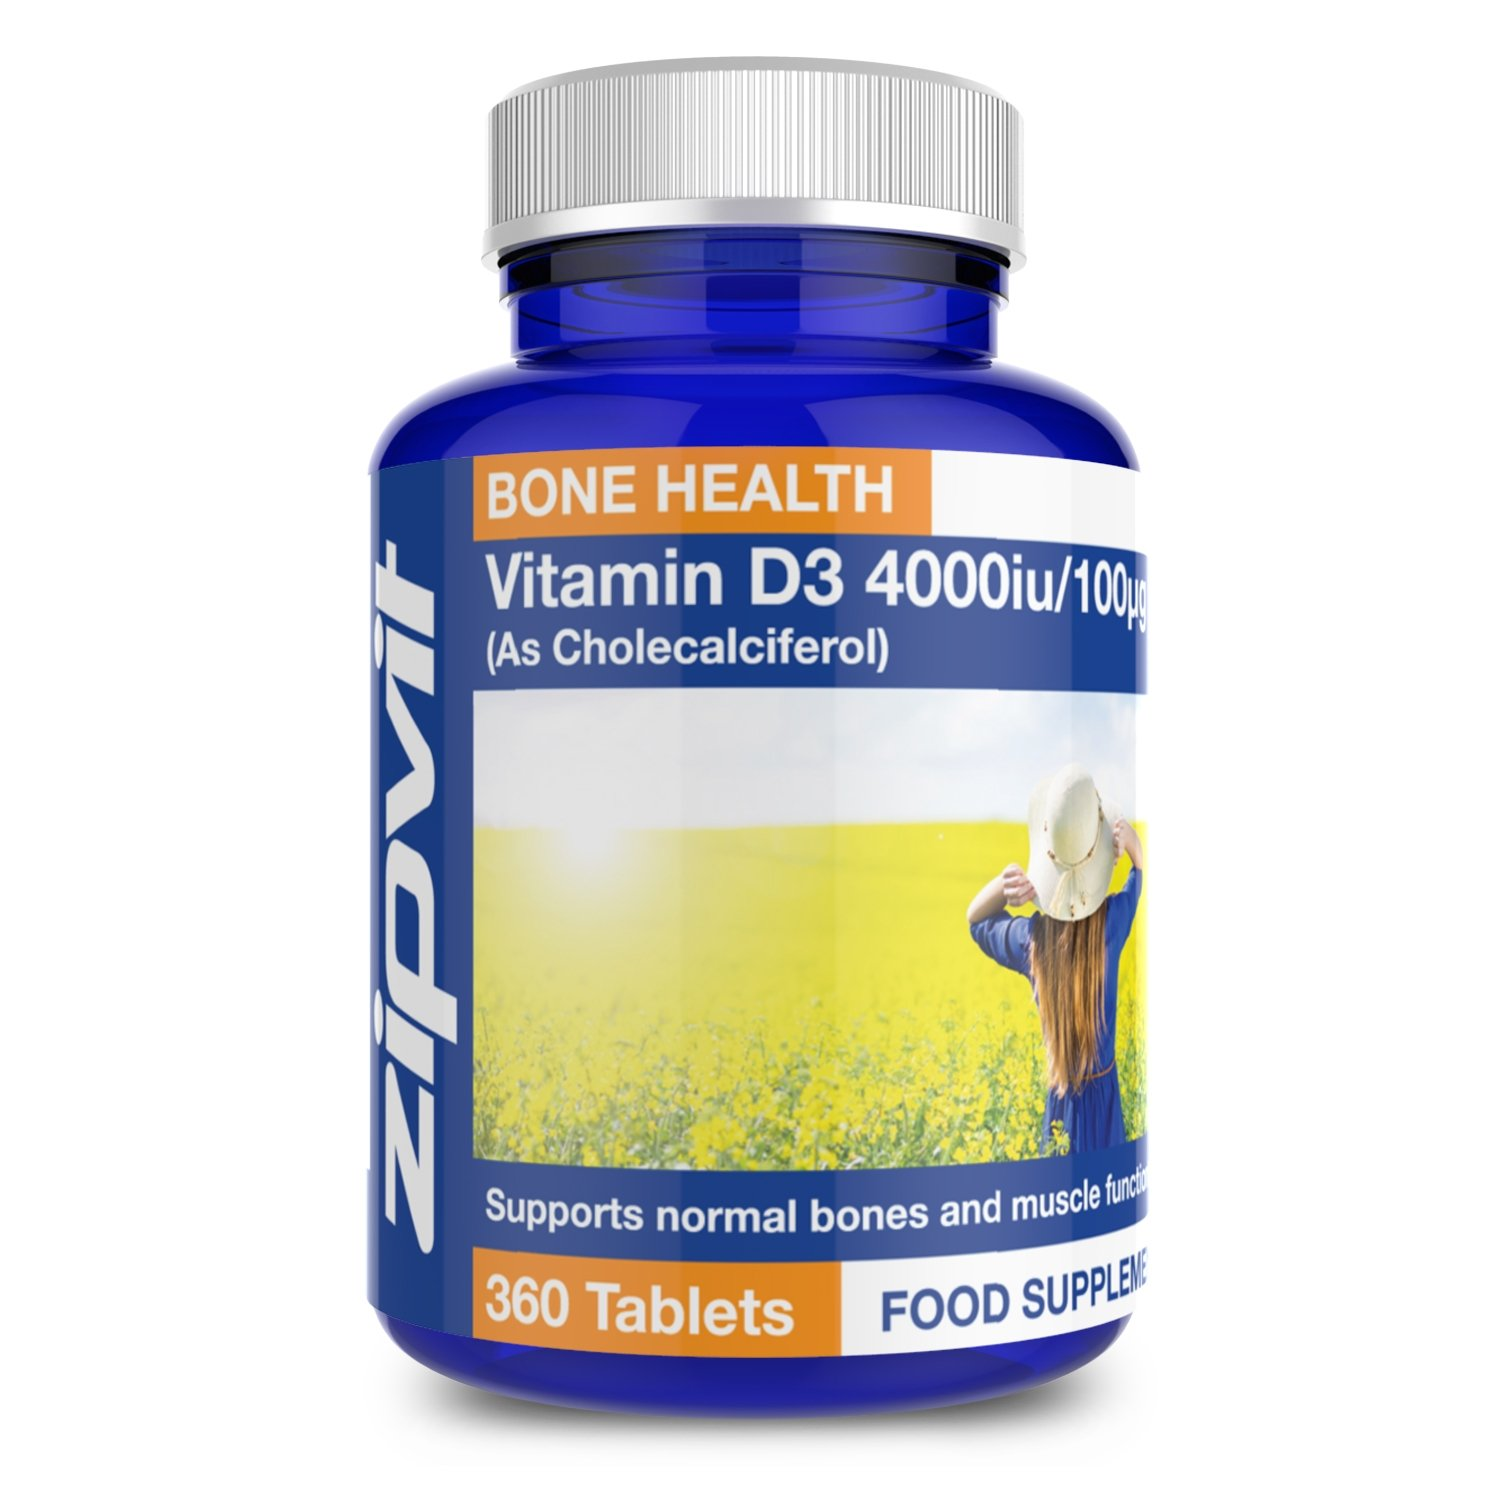 Vitamin D3 4000iu x 360 Tablets - High Strength Vitamin D | Supports Bone & Muscle Function - Maintains Immune System | Vegetarian - 12 Months Supply product image